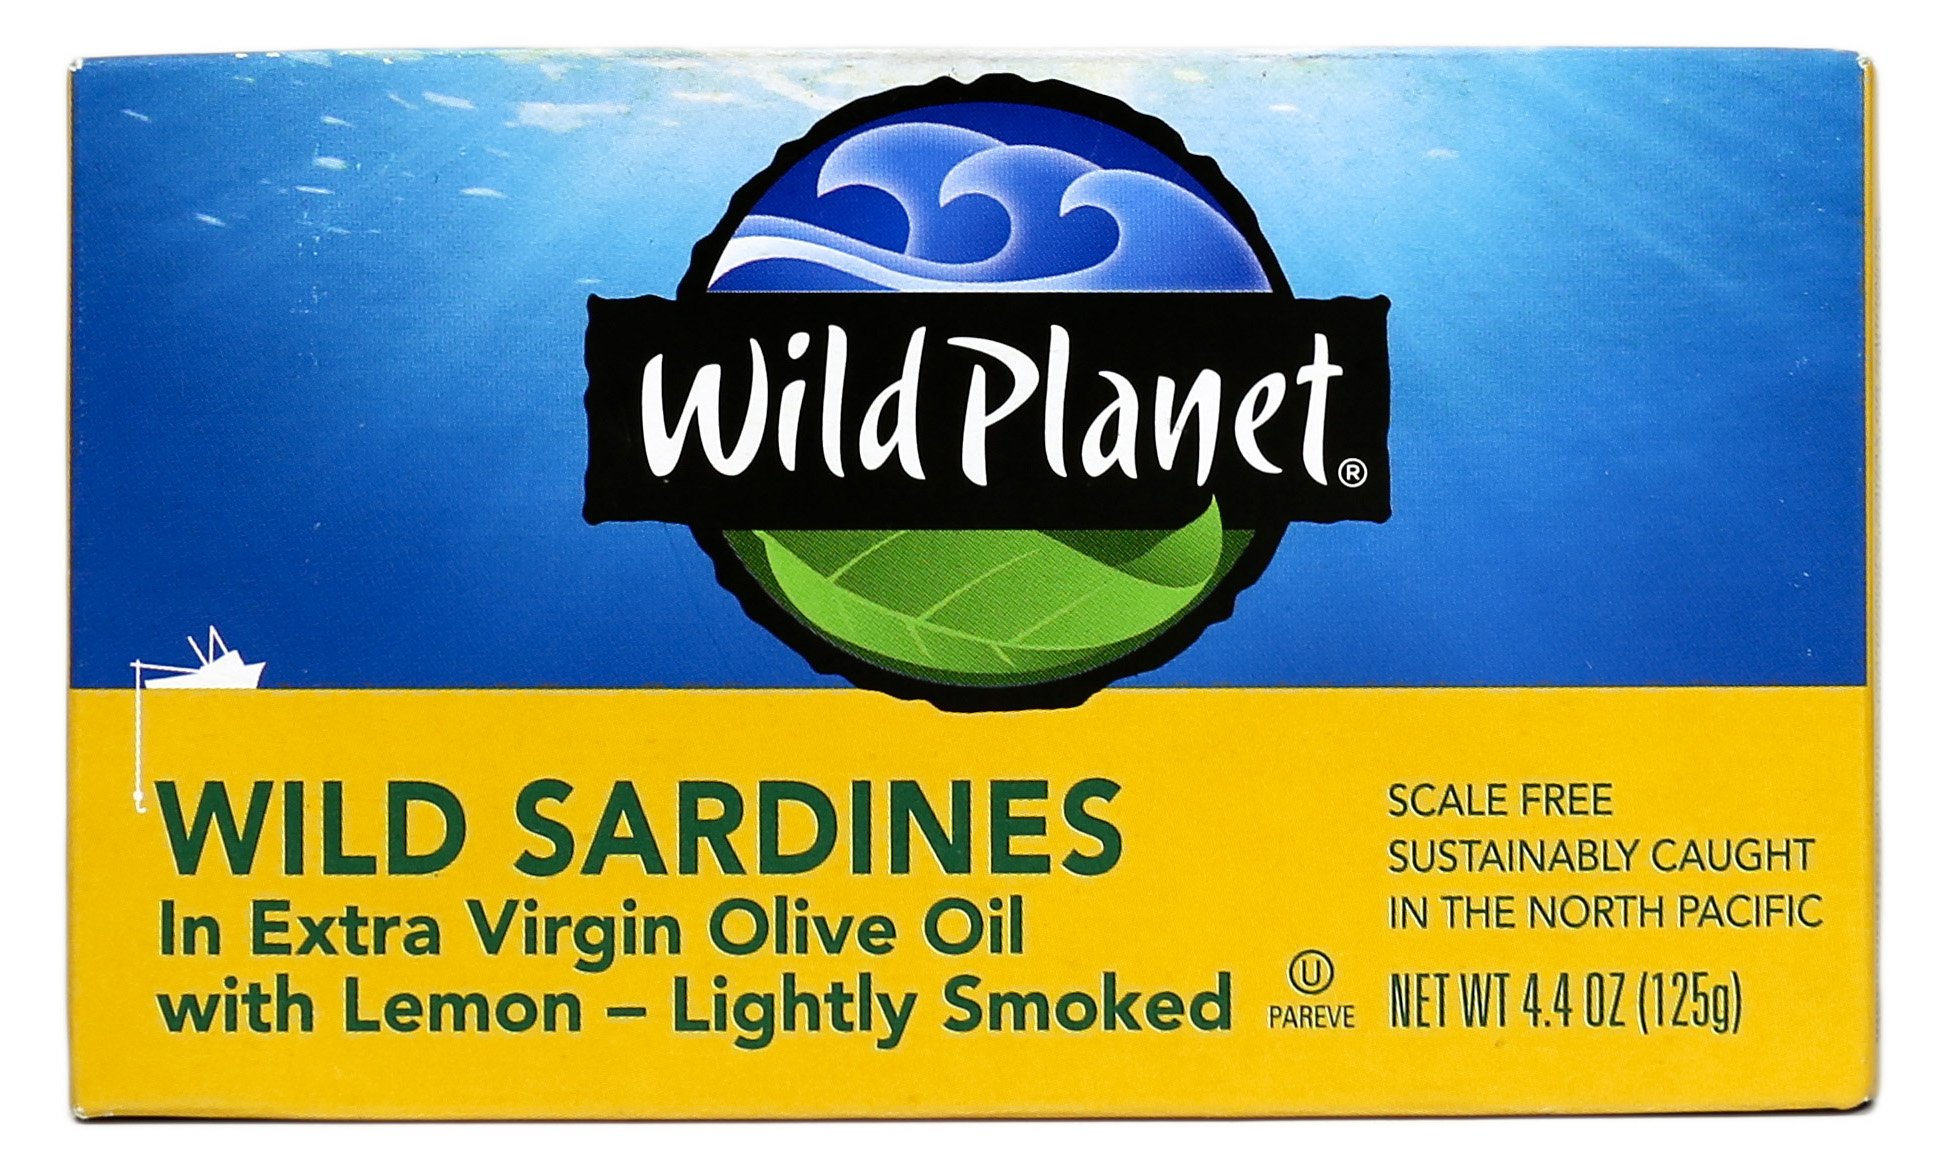 Wild Planet Wild Sardines in Extra Virgin Olive Oil With Lemon, Lightly Smoked – 4.4oz Can (Pack of 12)